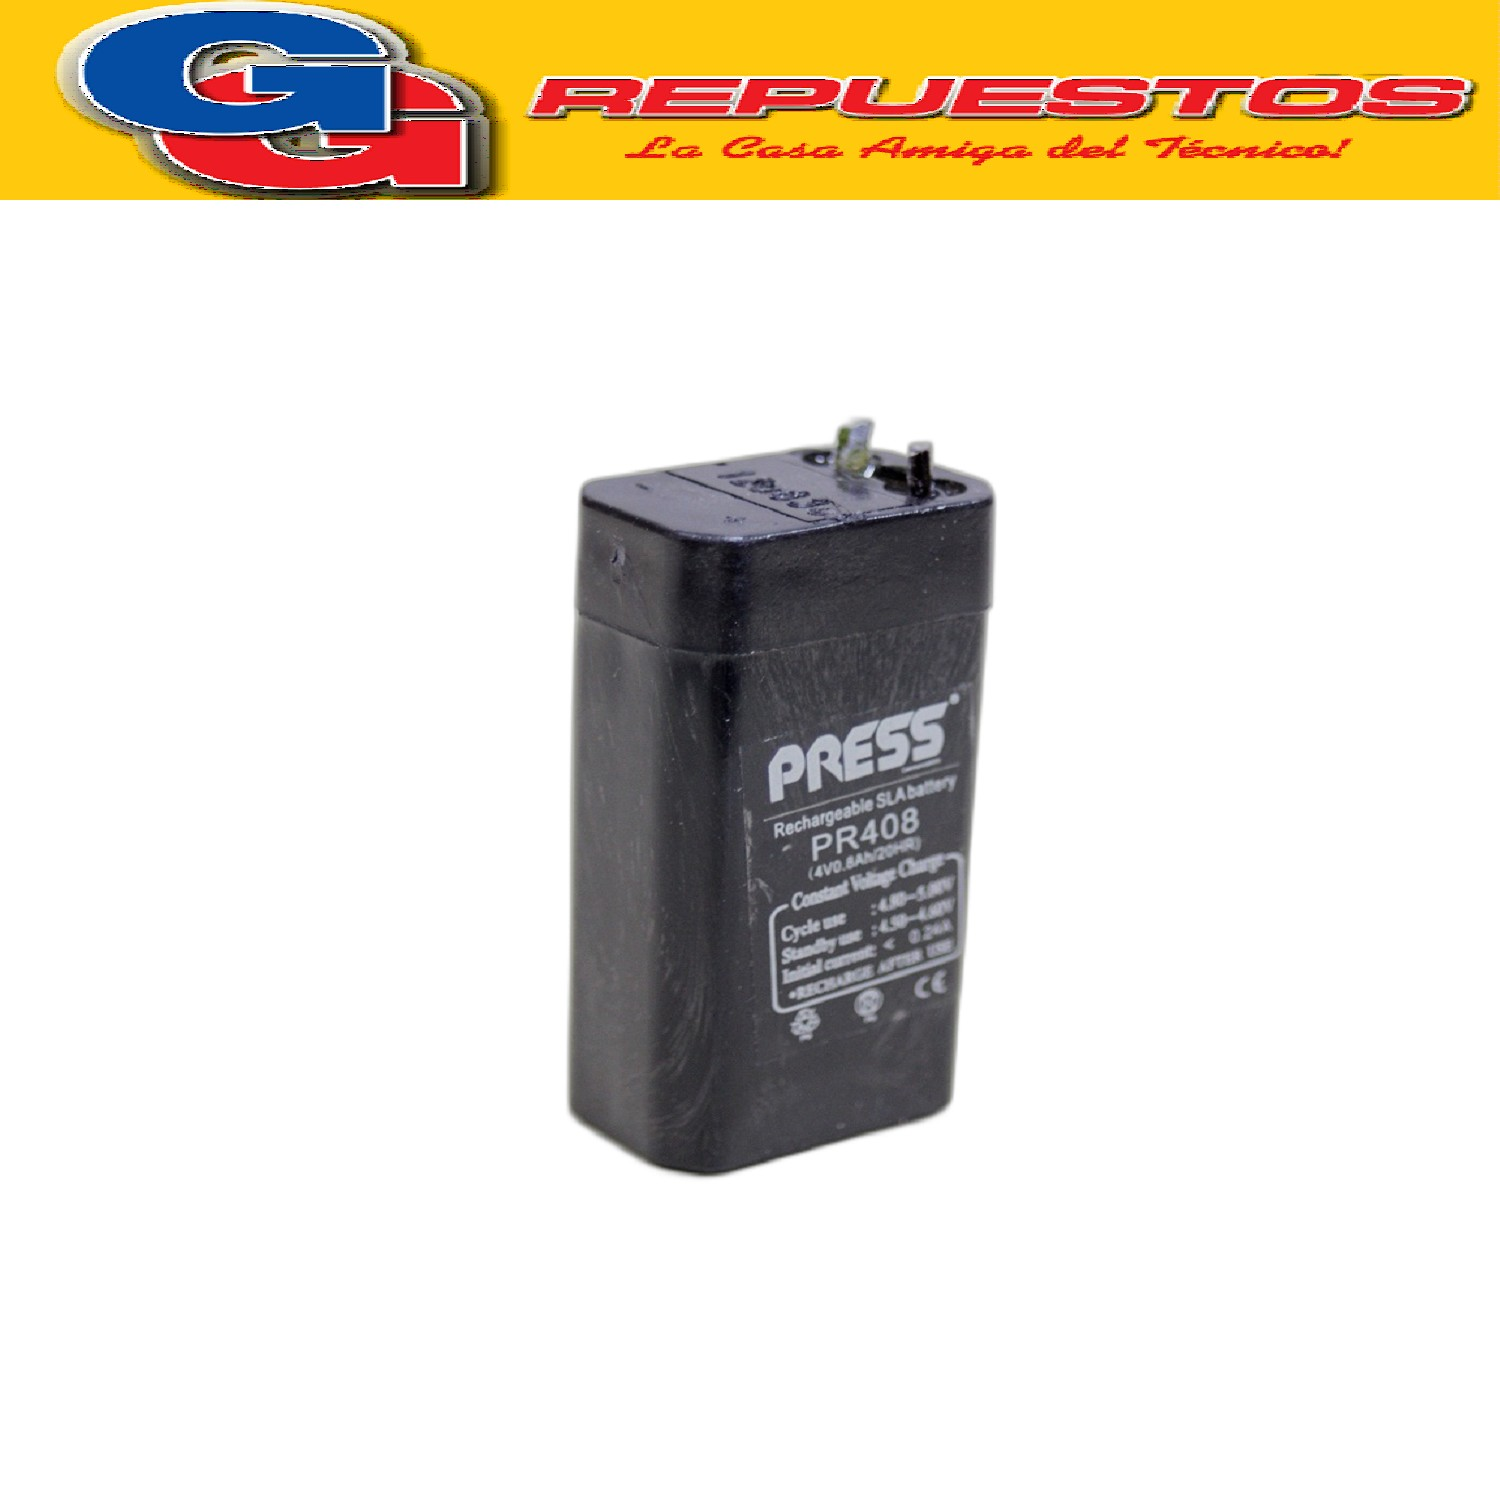 Bateria de Gel Recargable de 0.8A de capacidad y 4V. Marca PRESS 0.8A 4V Largo:22 MM - Ancho:22 MM - Altura:60 MM - Tipo de conector: cables -